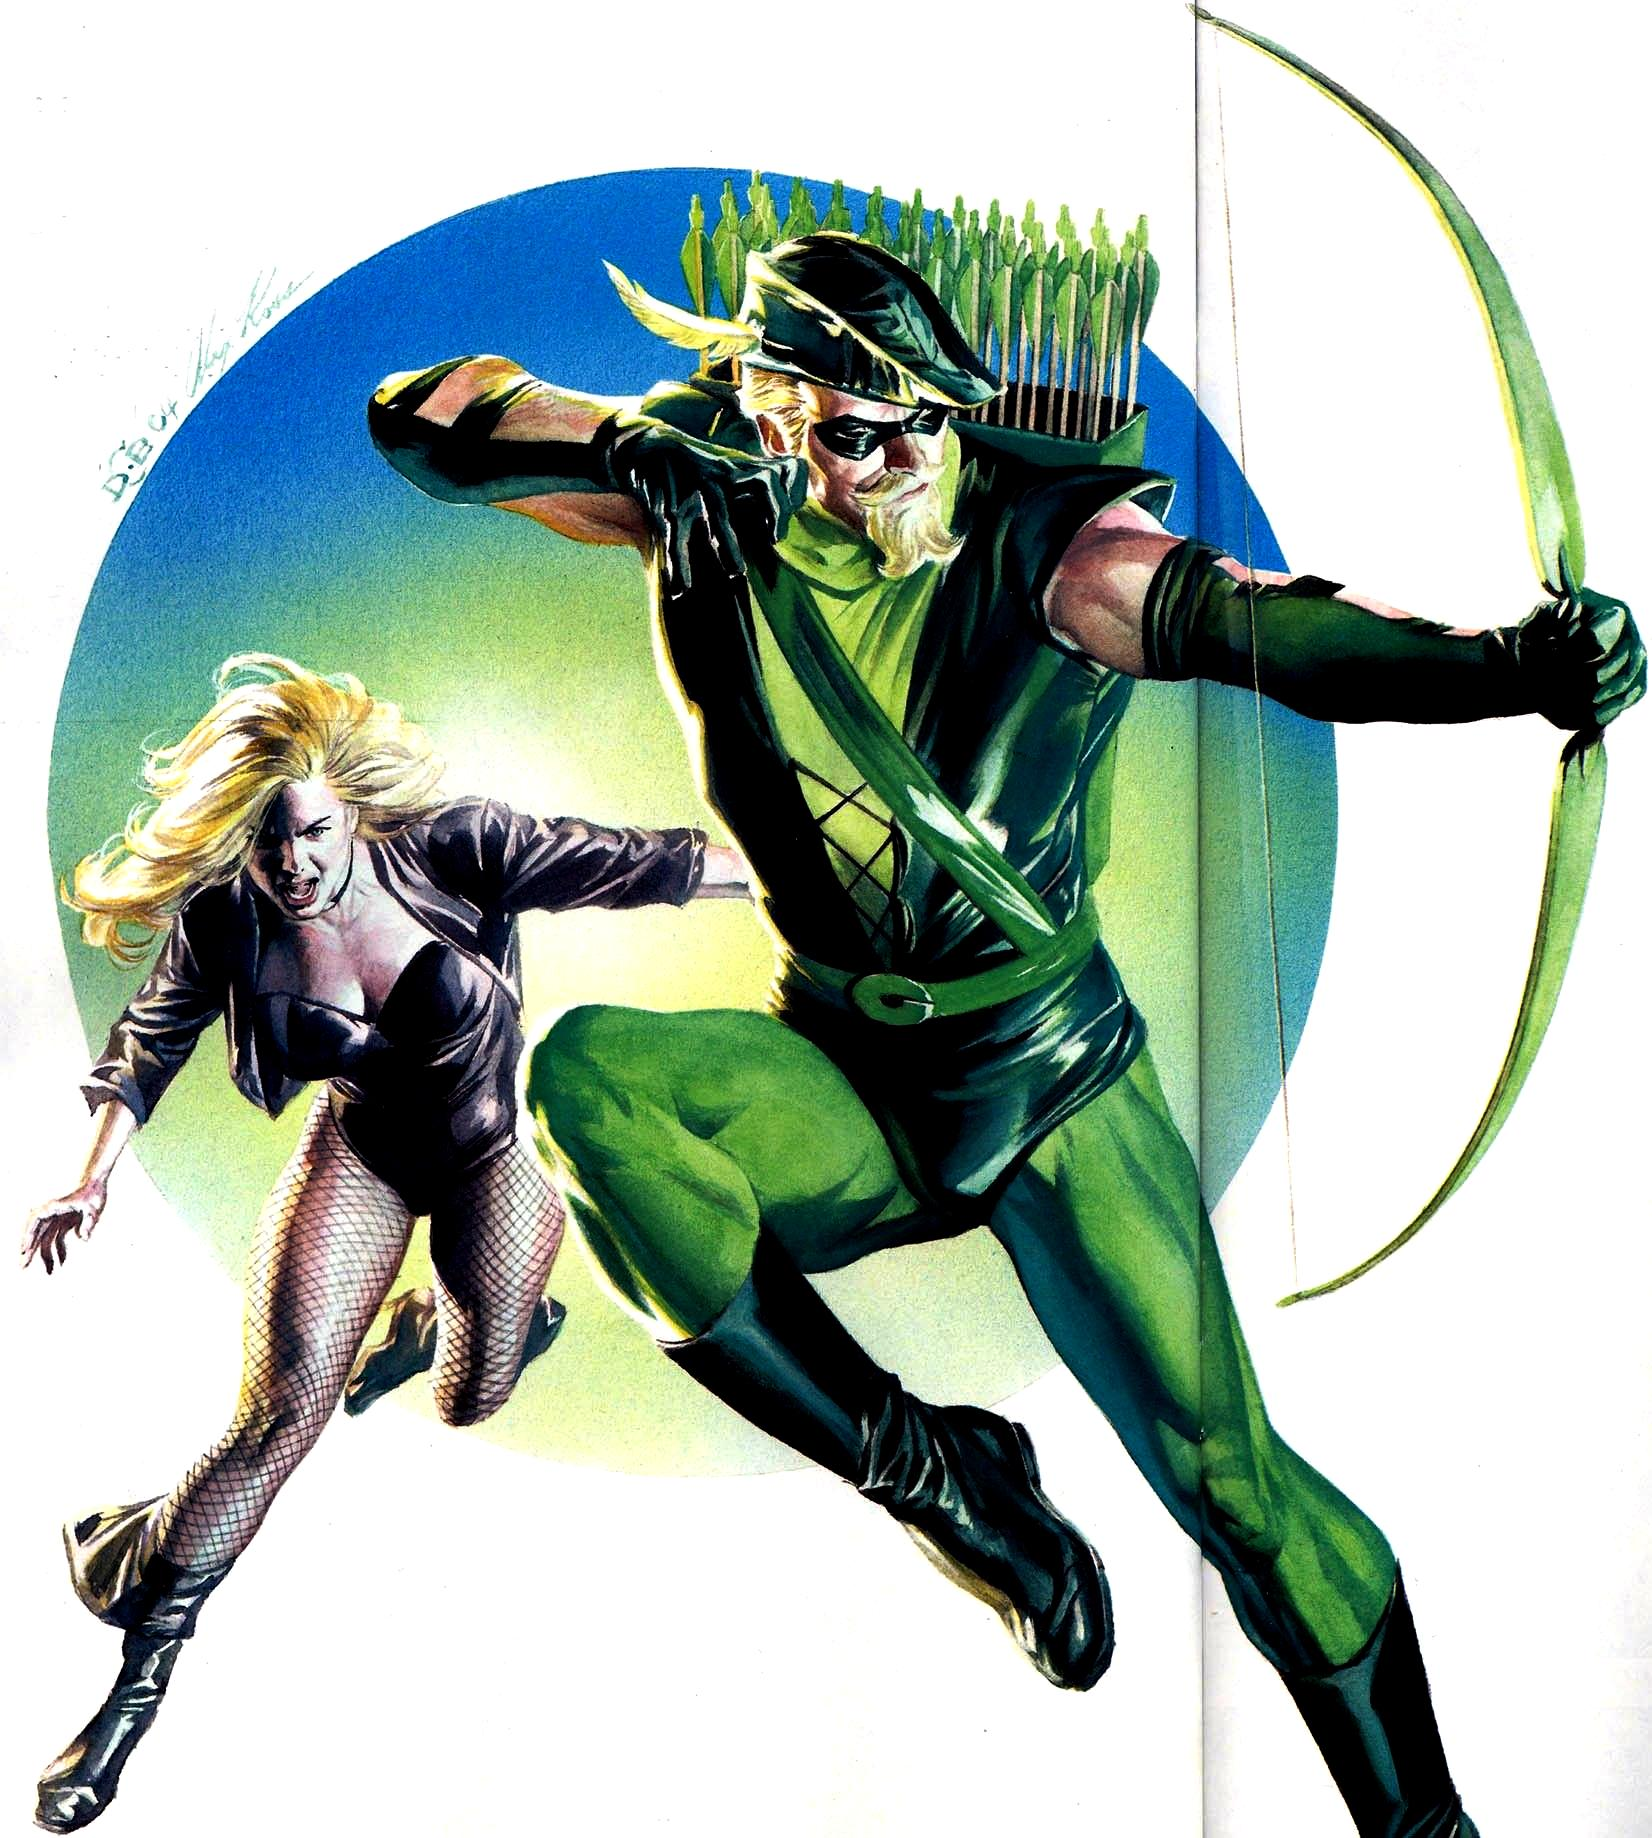 Picture of green arrow jpg library download Image - Green Arrow Justice 10.jpg | DC Database | Fandom powered ... jpg library download